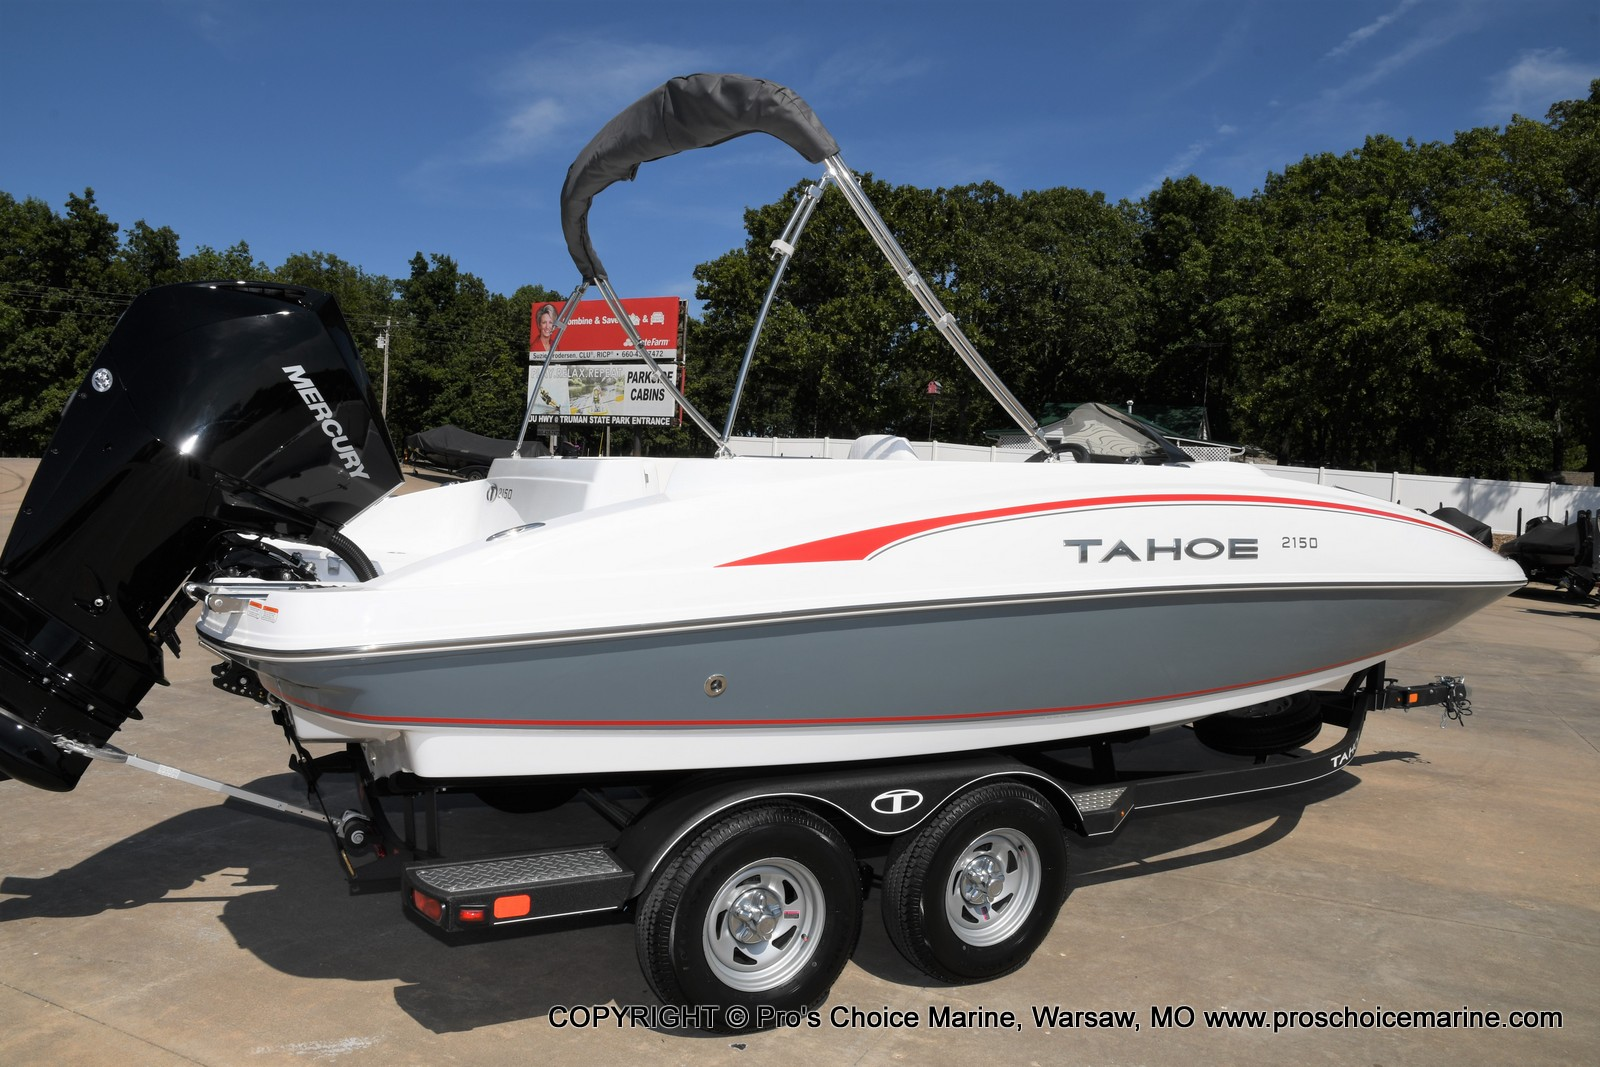 2021 Tahoe boat for sale, model of the boat is 2150 & Image # 46 of 50